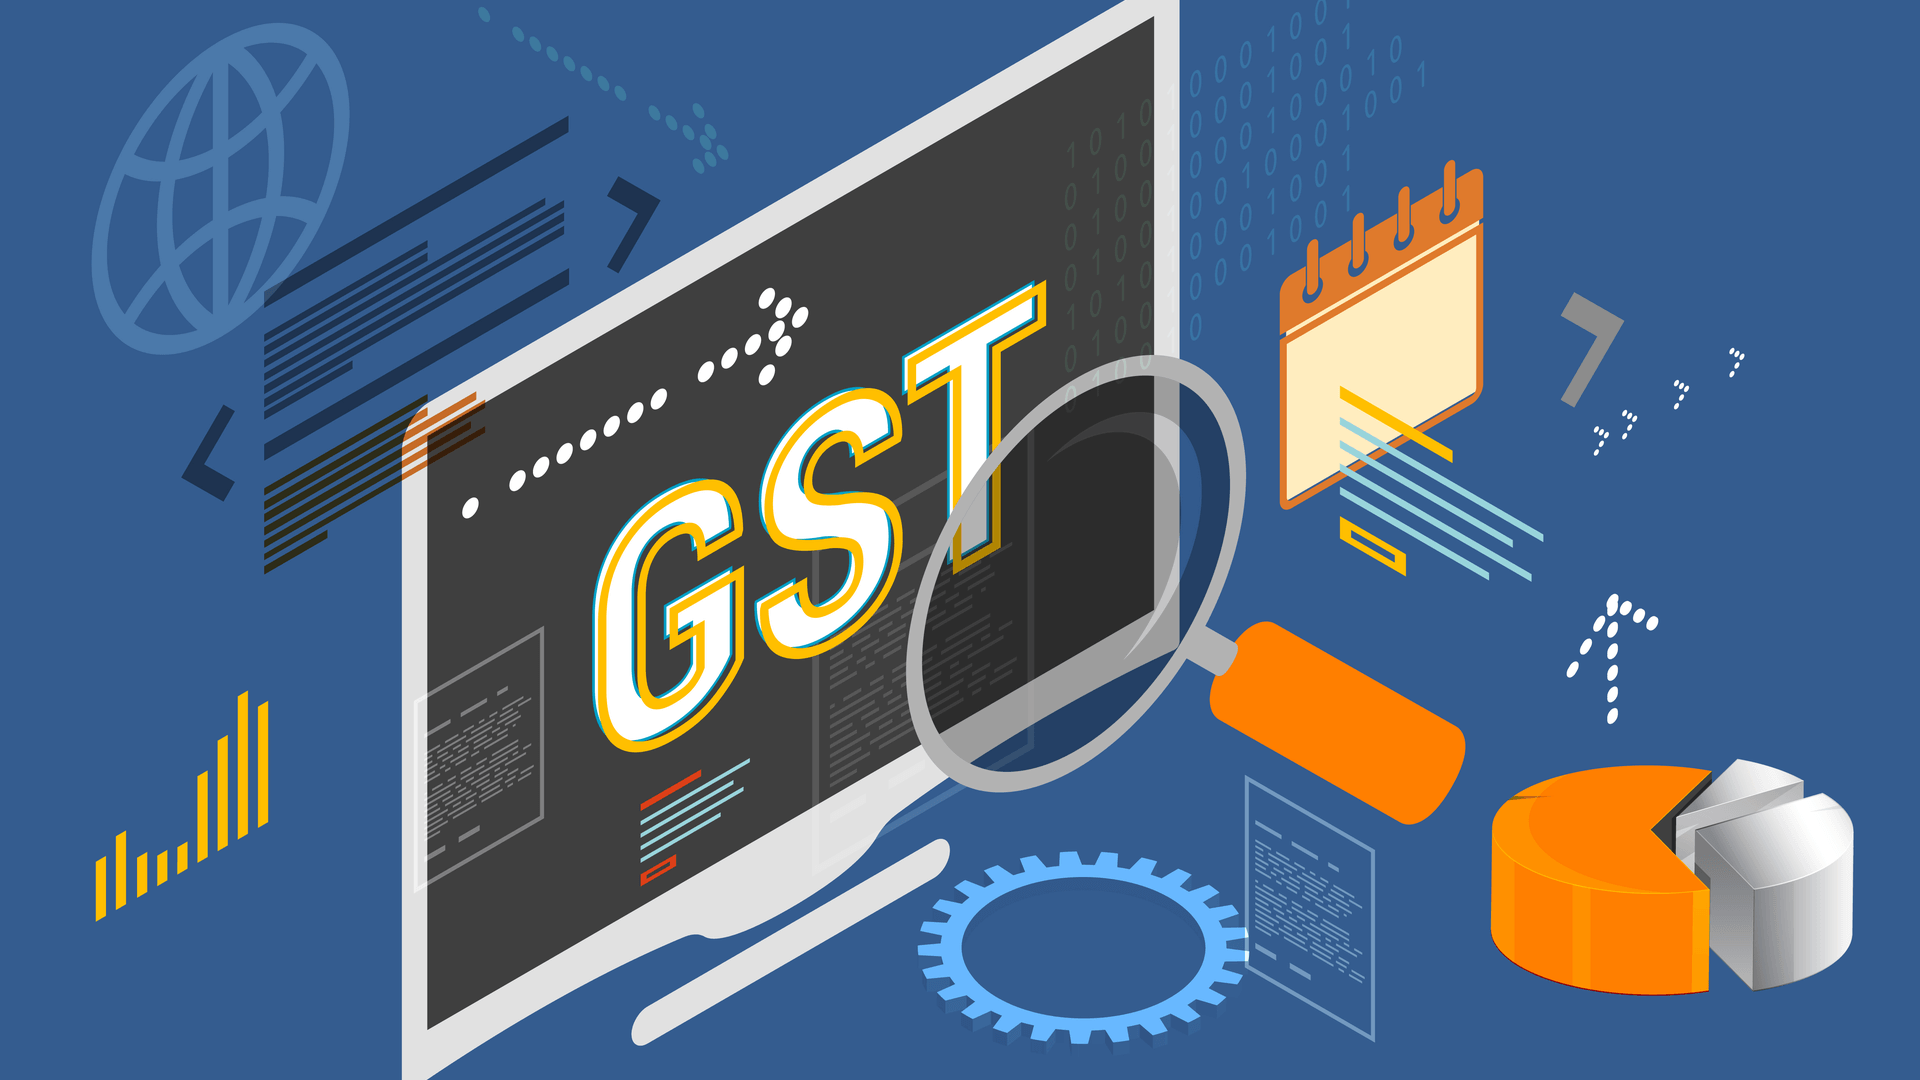 All about GST Returns � What is it? Who should file? Types of GST Returns? - Legalo